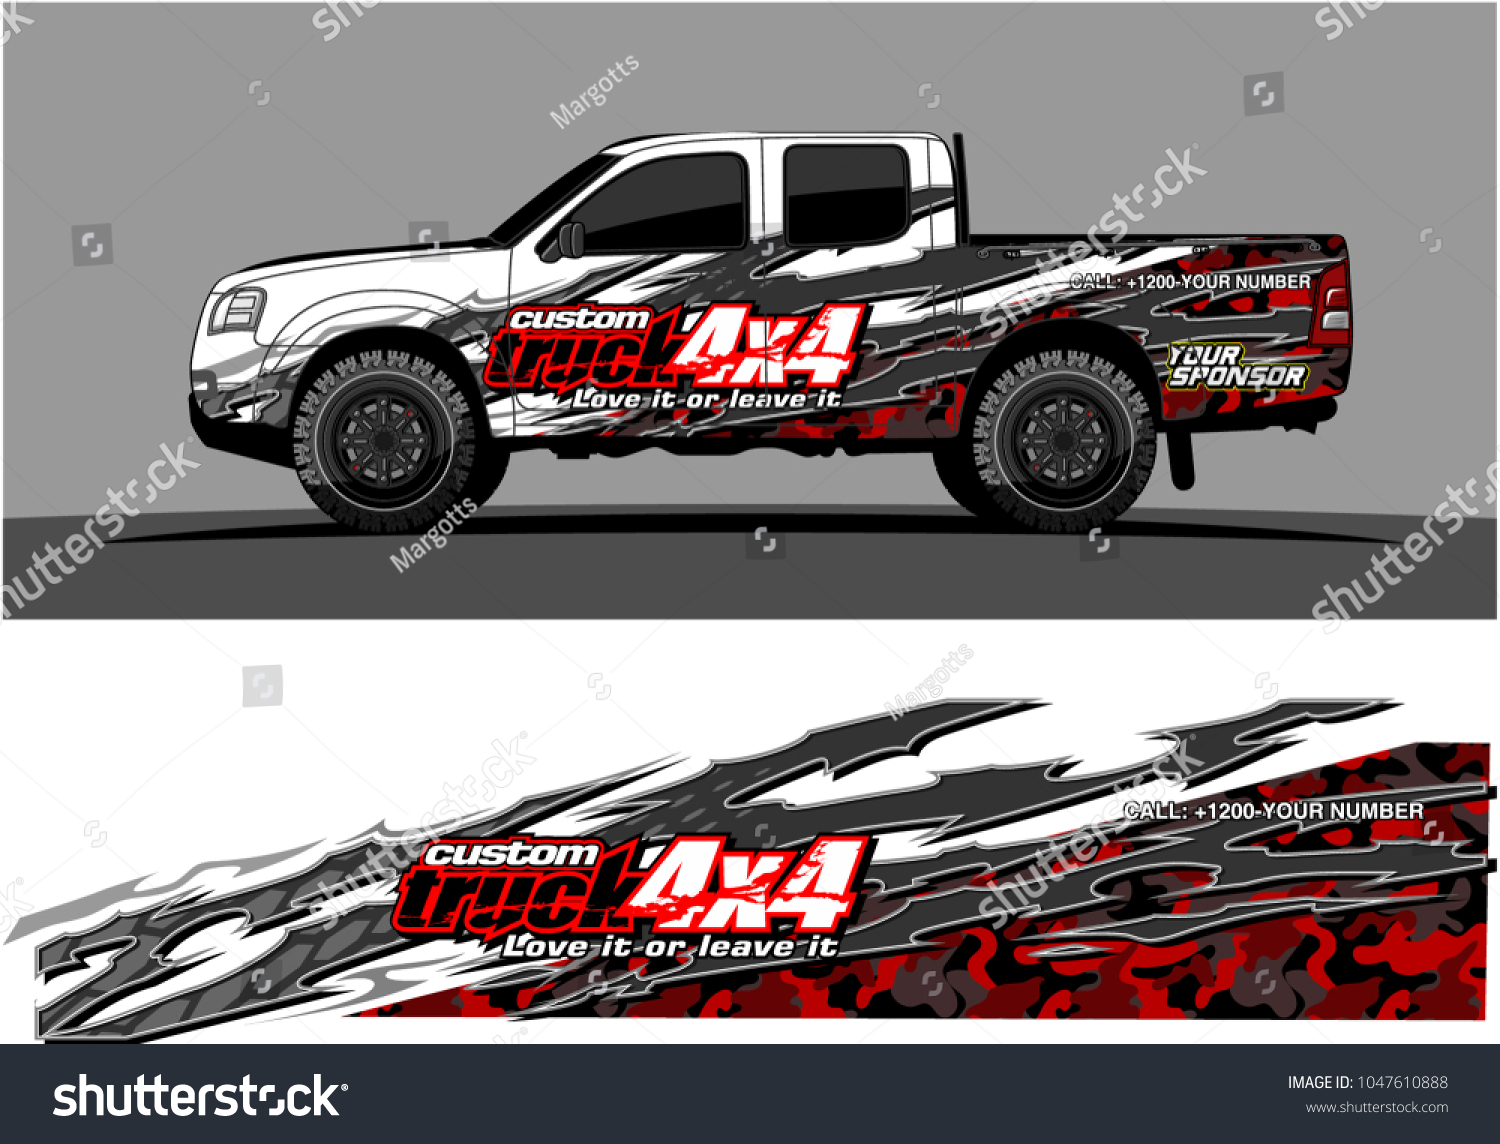 Truck graphic vector kit racing background for cars vehicle and truck vinyl sticker wrap